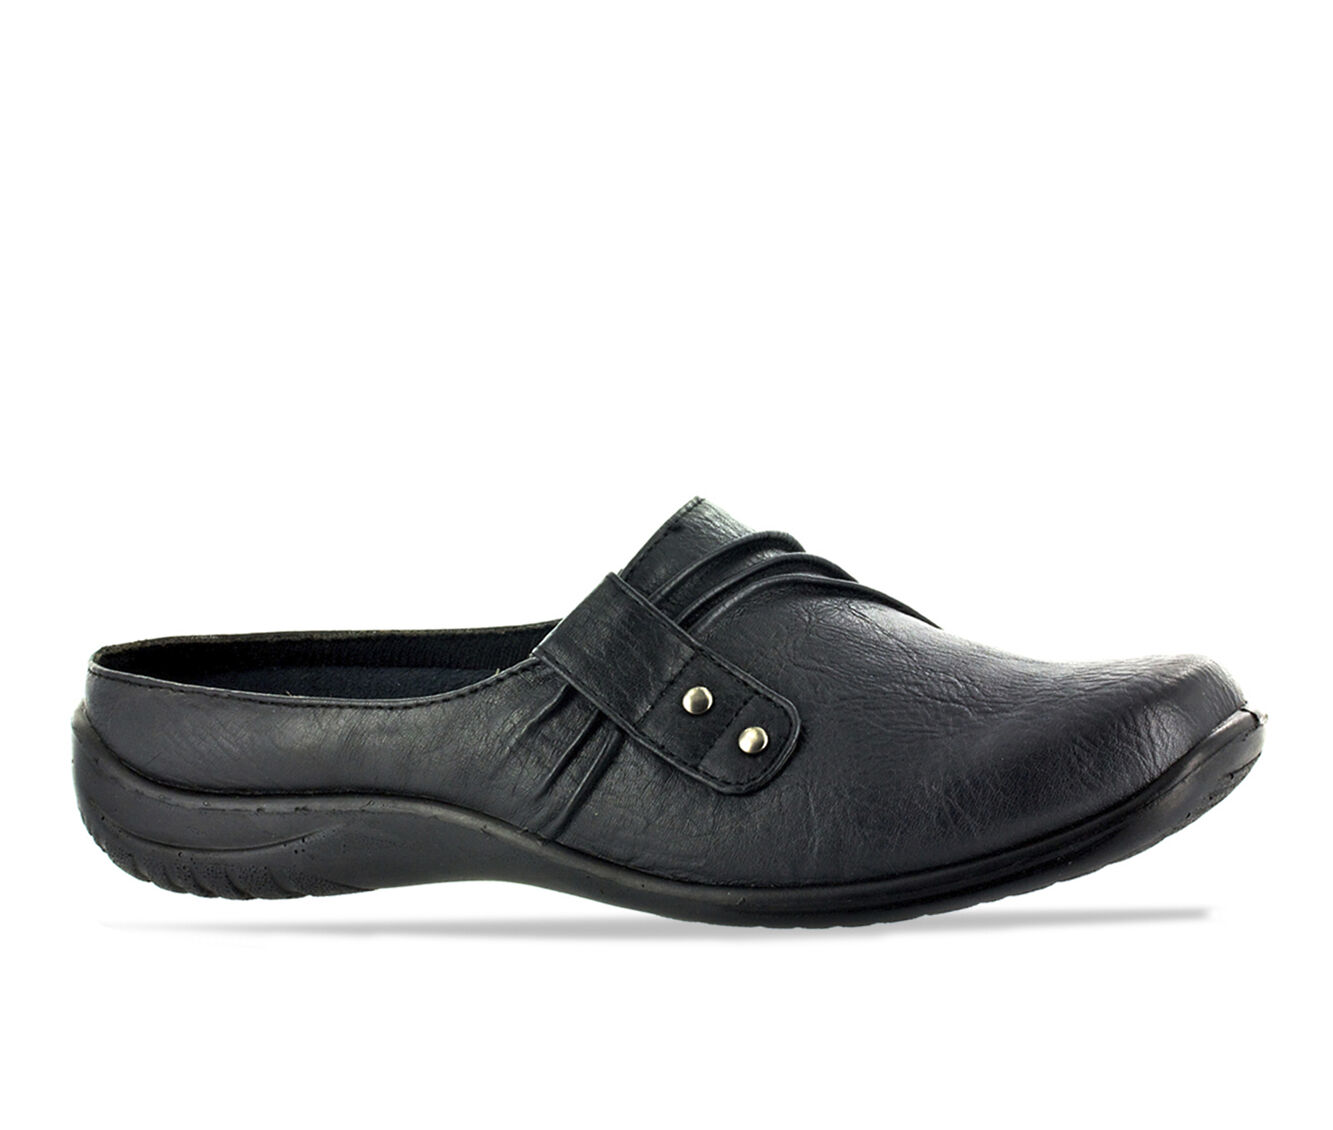 Women's Easy Street Holly Shoes Black